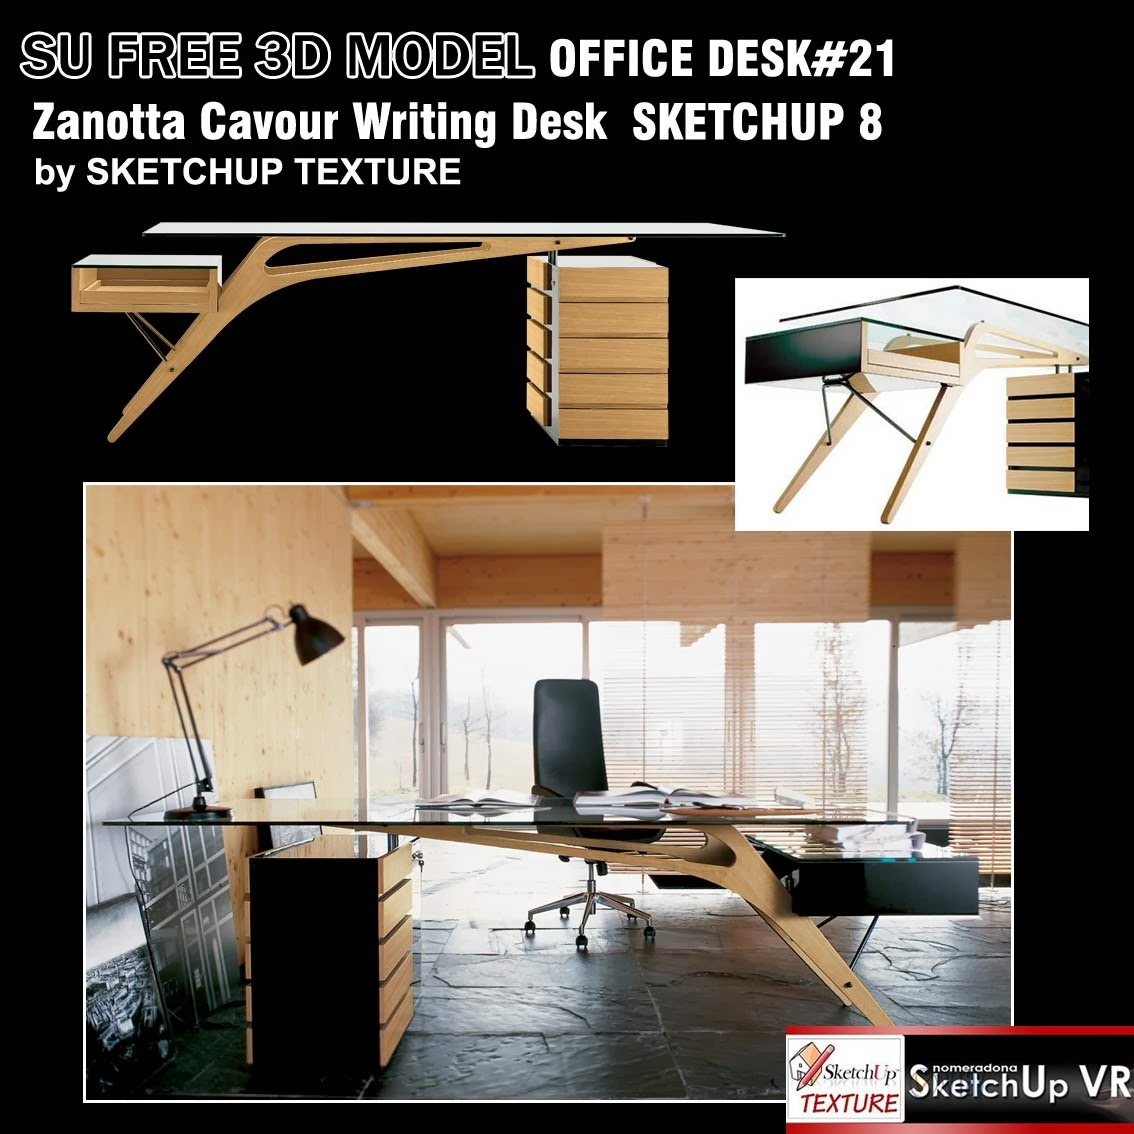 SKETCHUP TEXTURE: SKETCHUP MODELS OFFICE FURNITURE